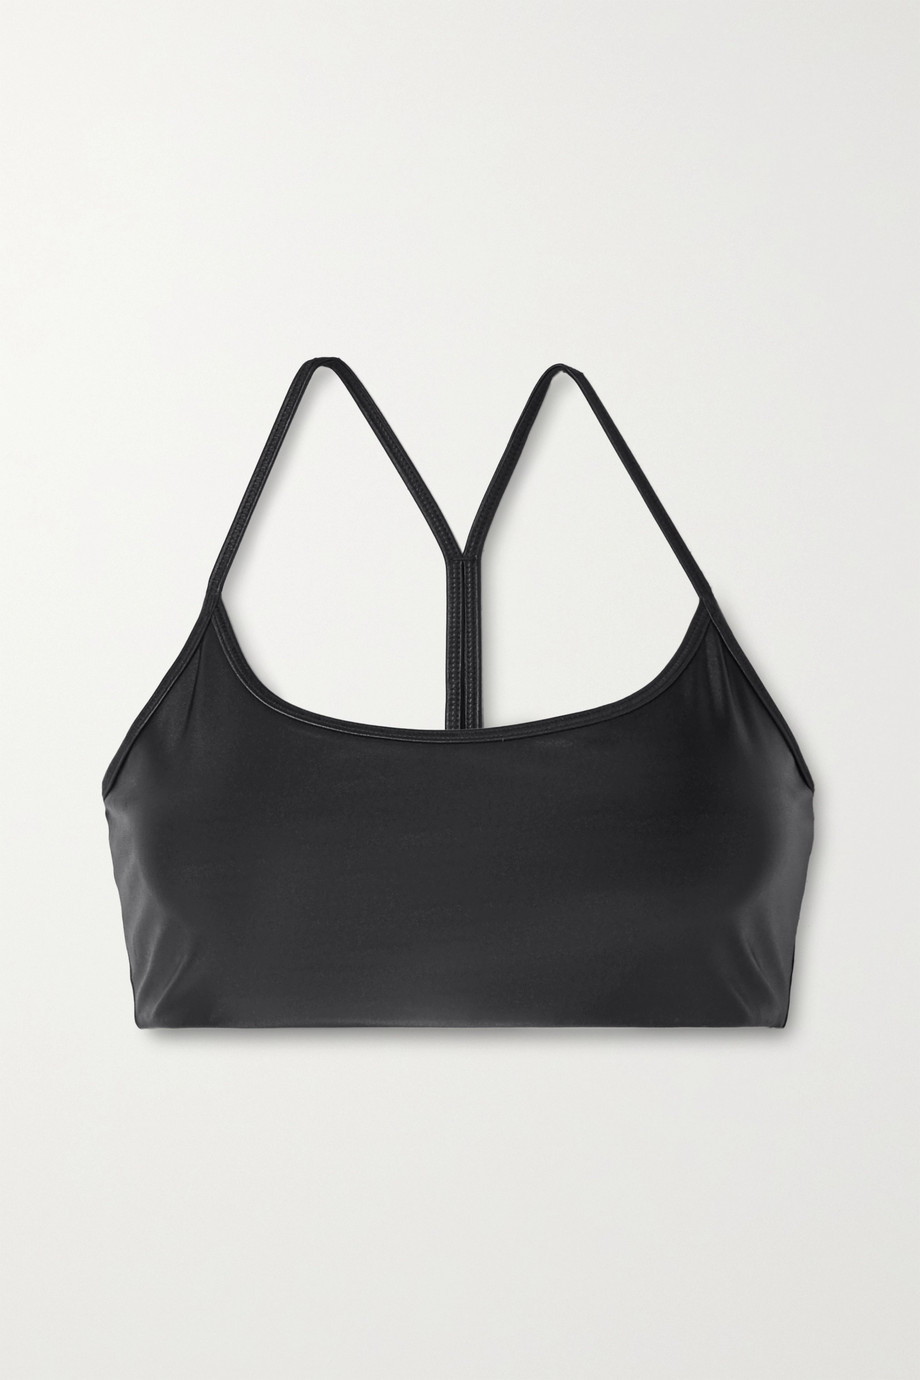 All Access Chorus stretch sports bra